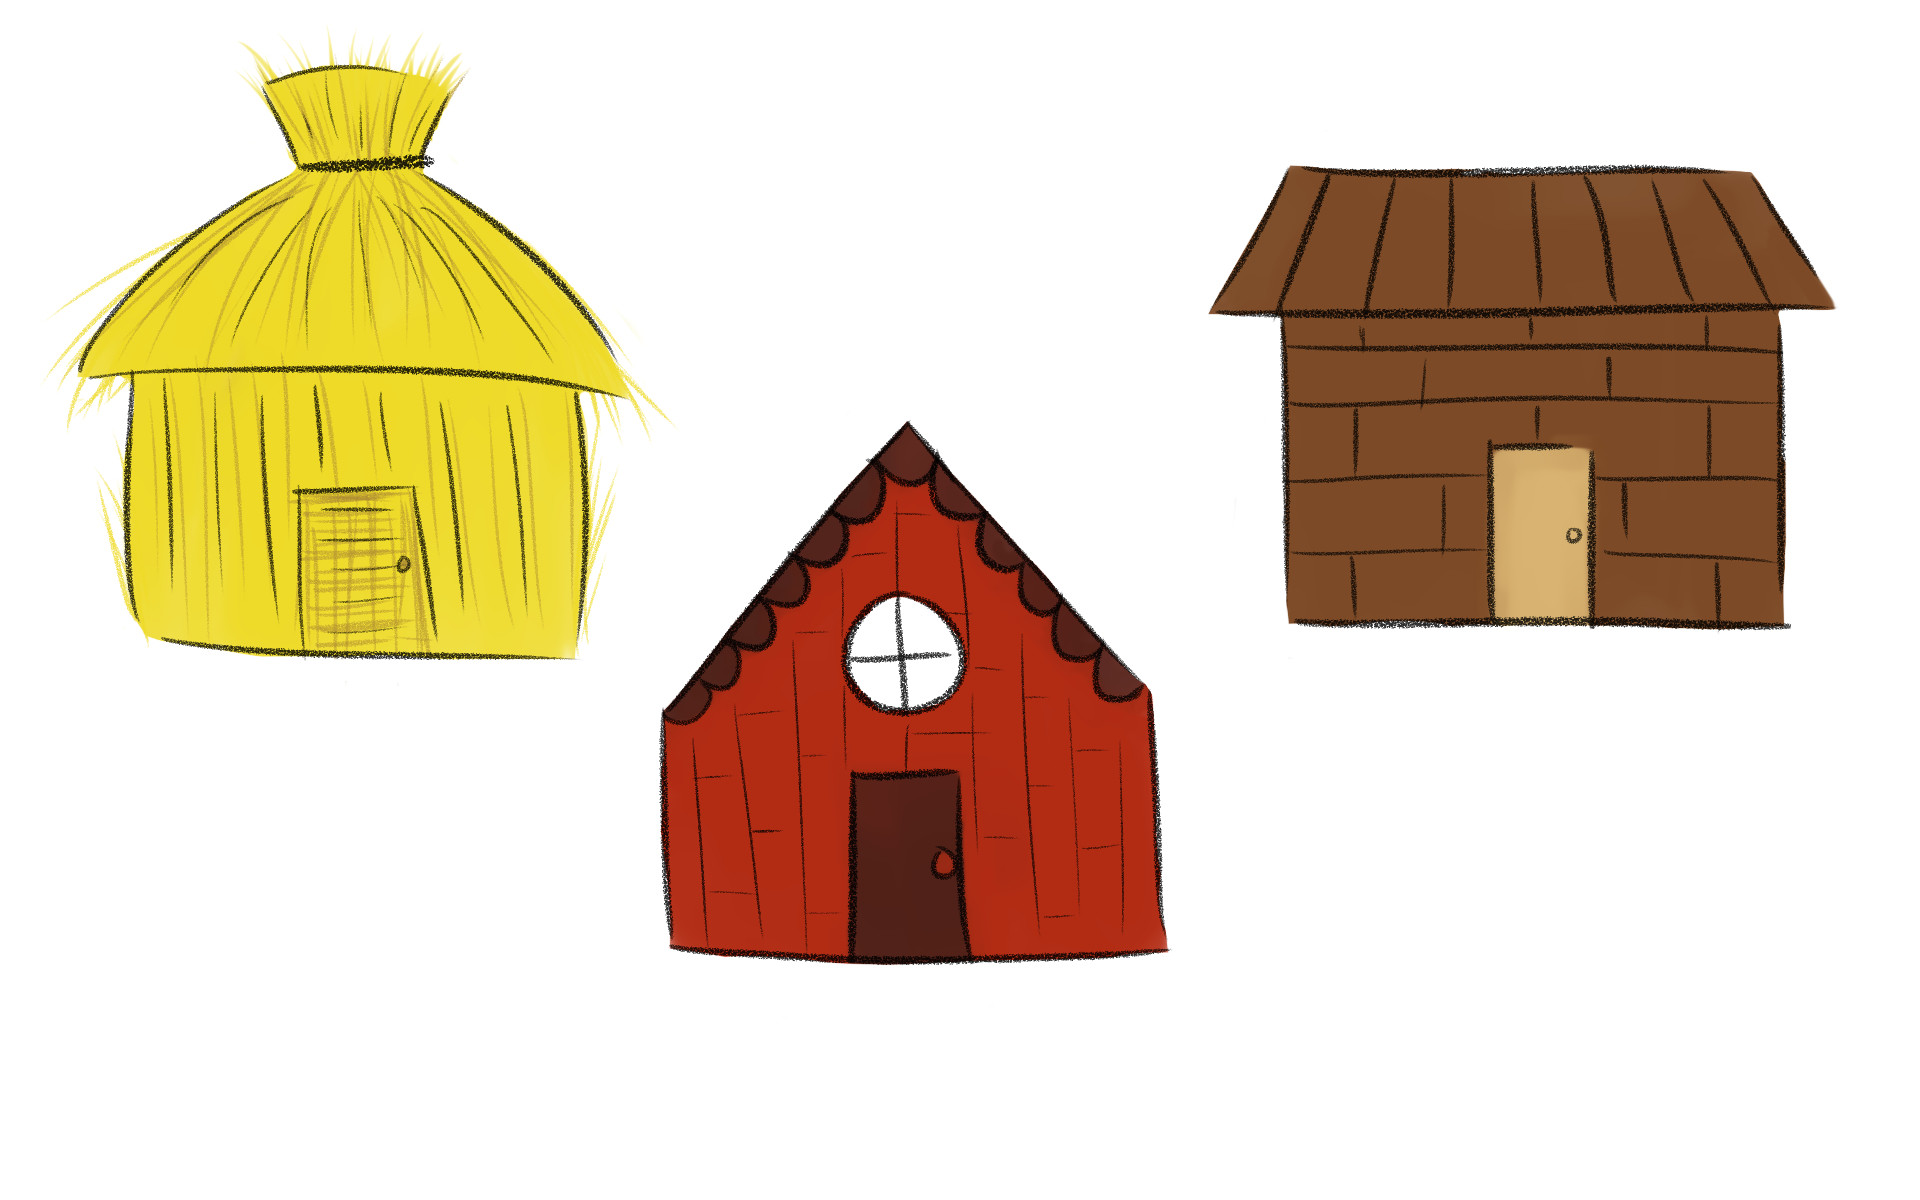 Three Little Pigs Houses Clipart at GetDrawings.com.